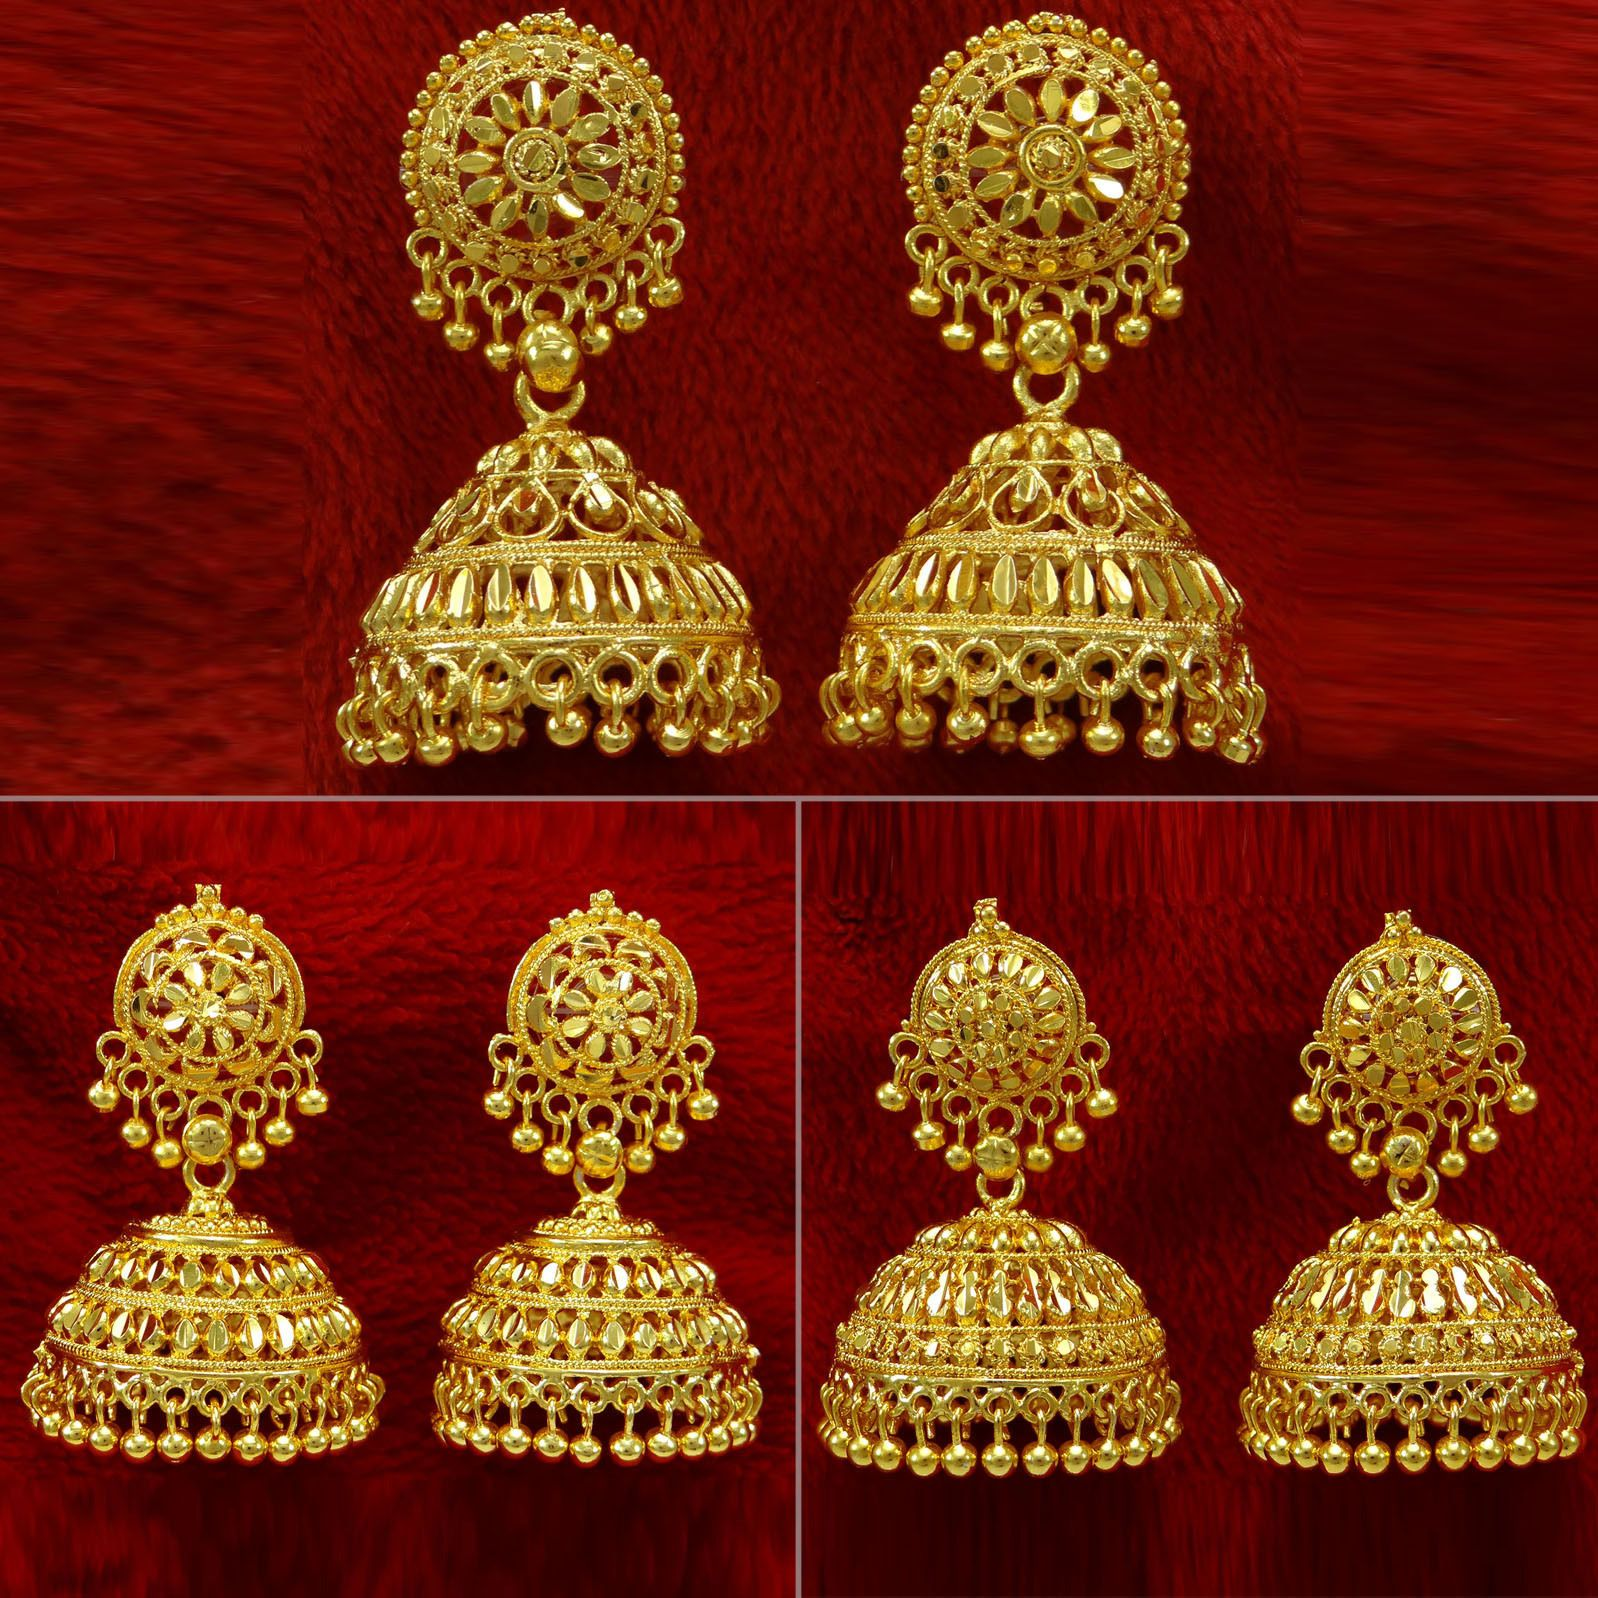 2defe3c39 Made from alloy these Jhumka are light in weight and durable. The 18 karat  gold